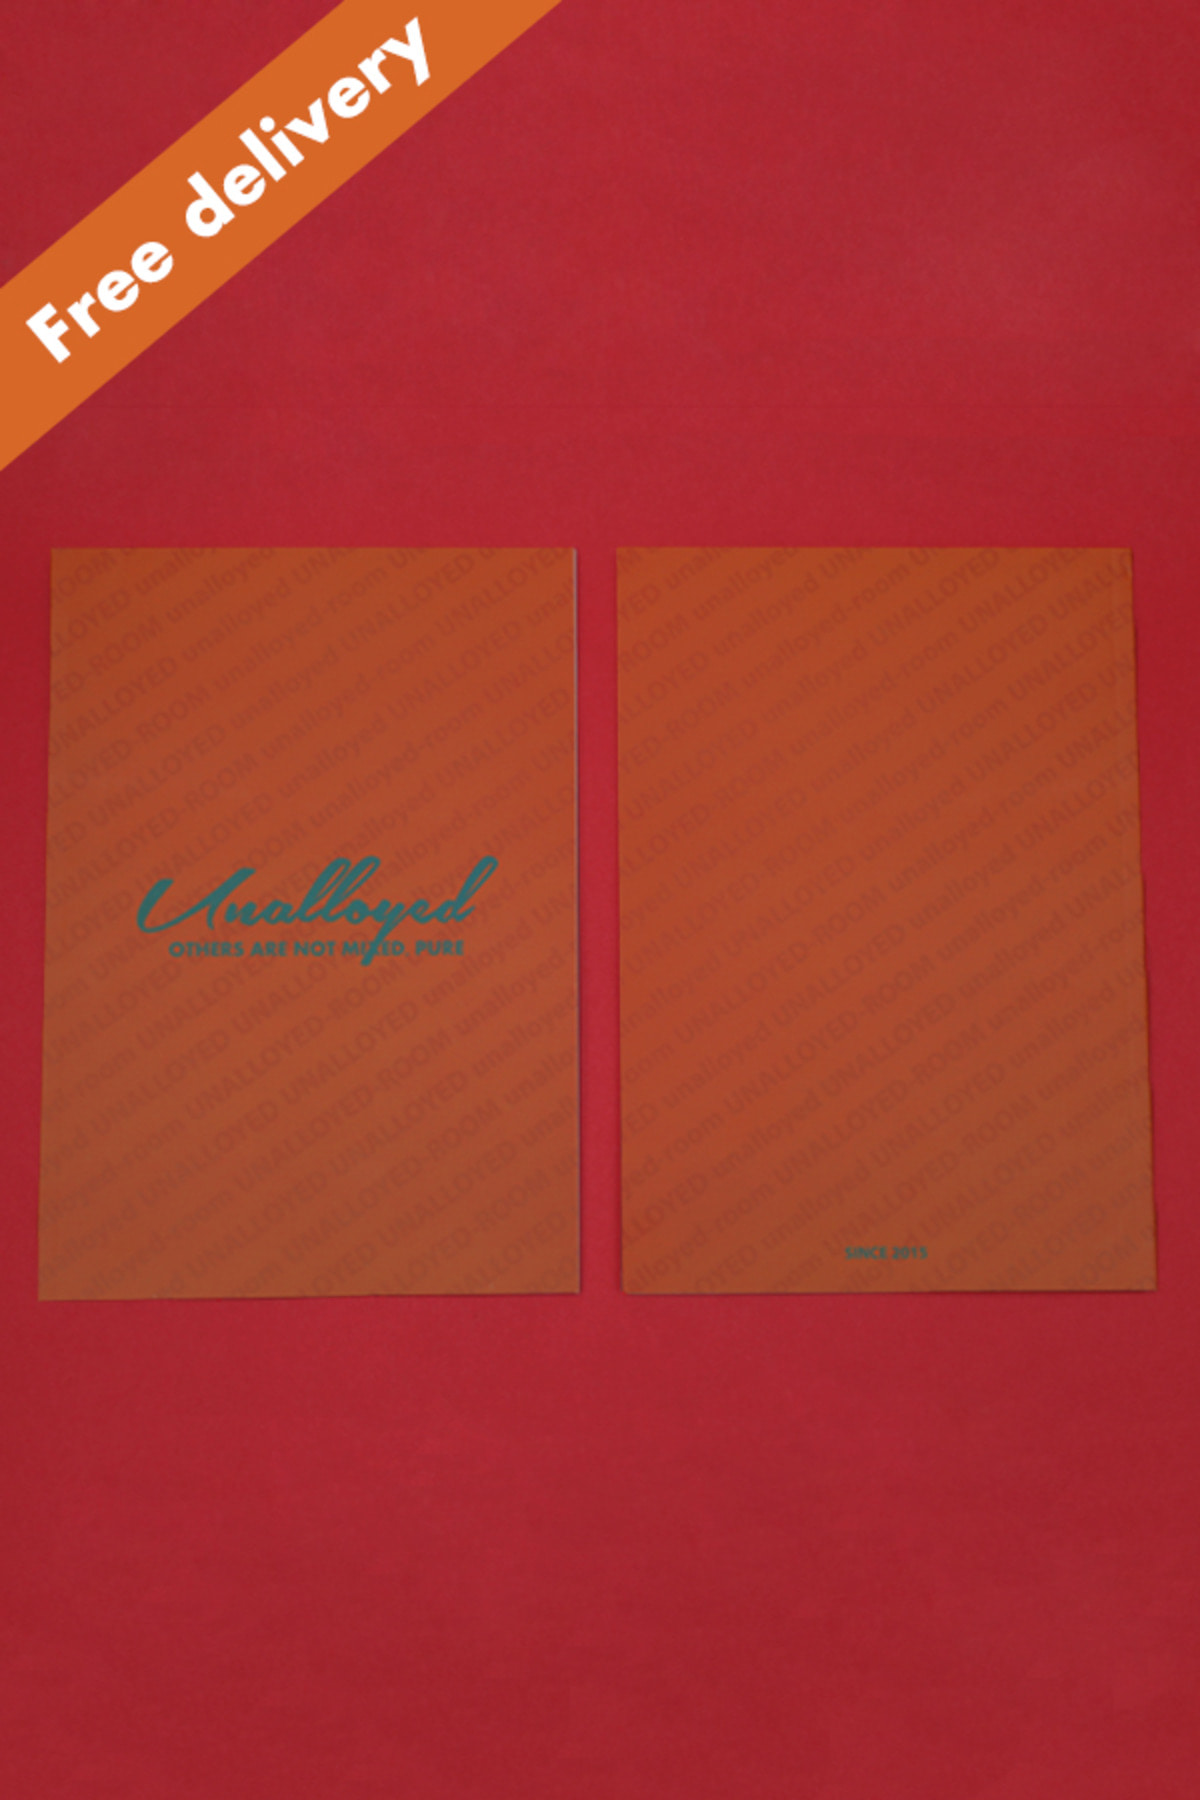 [GOODS] UNALLOYED ROOM NOTE / ORANGE